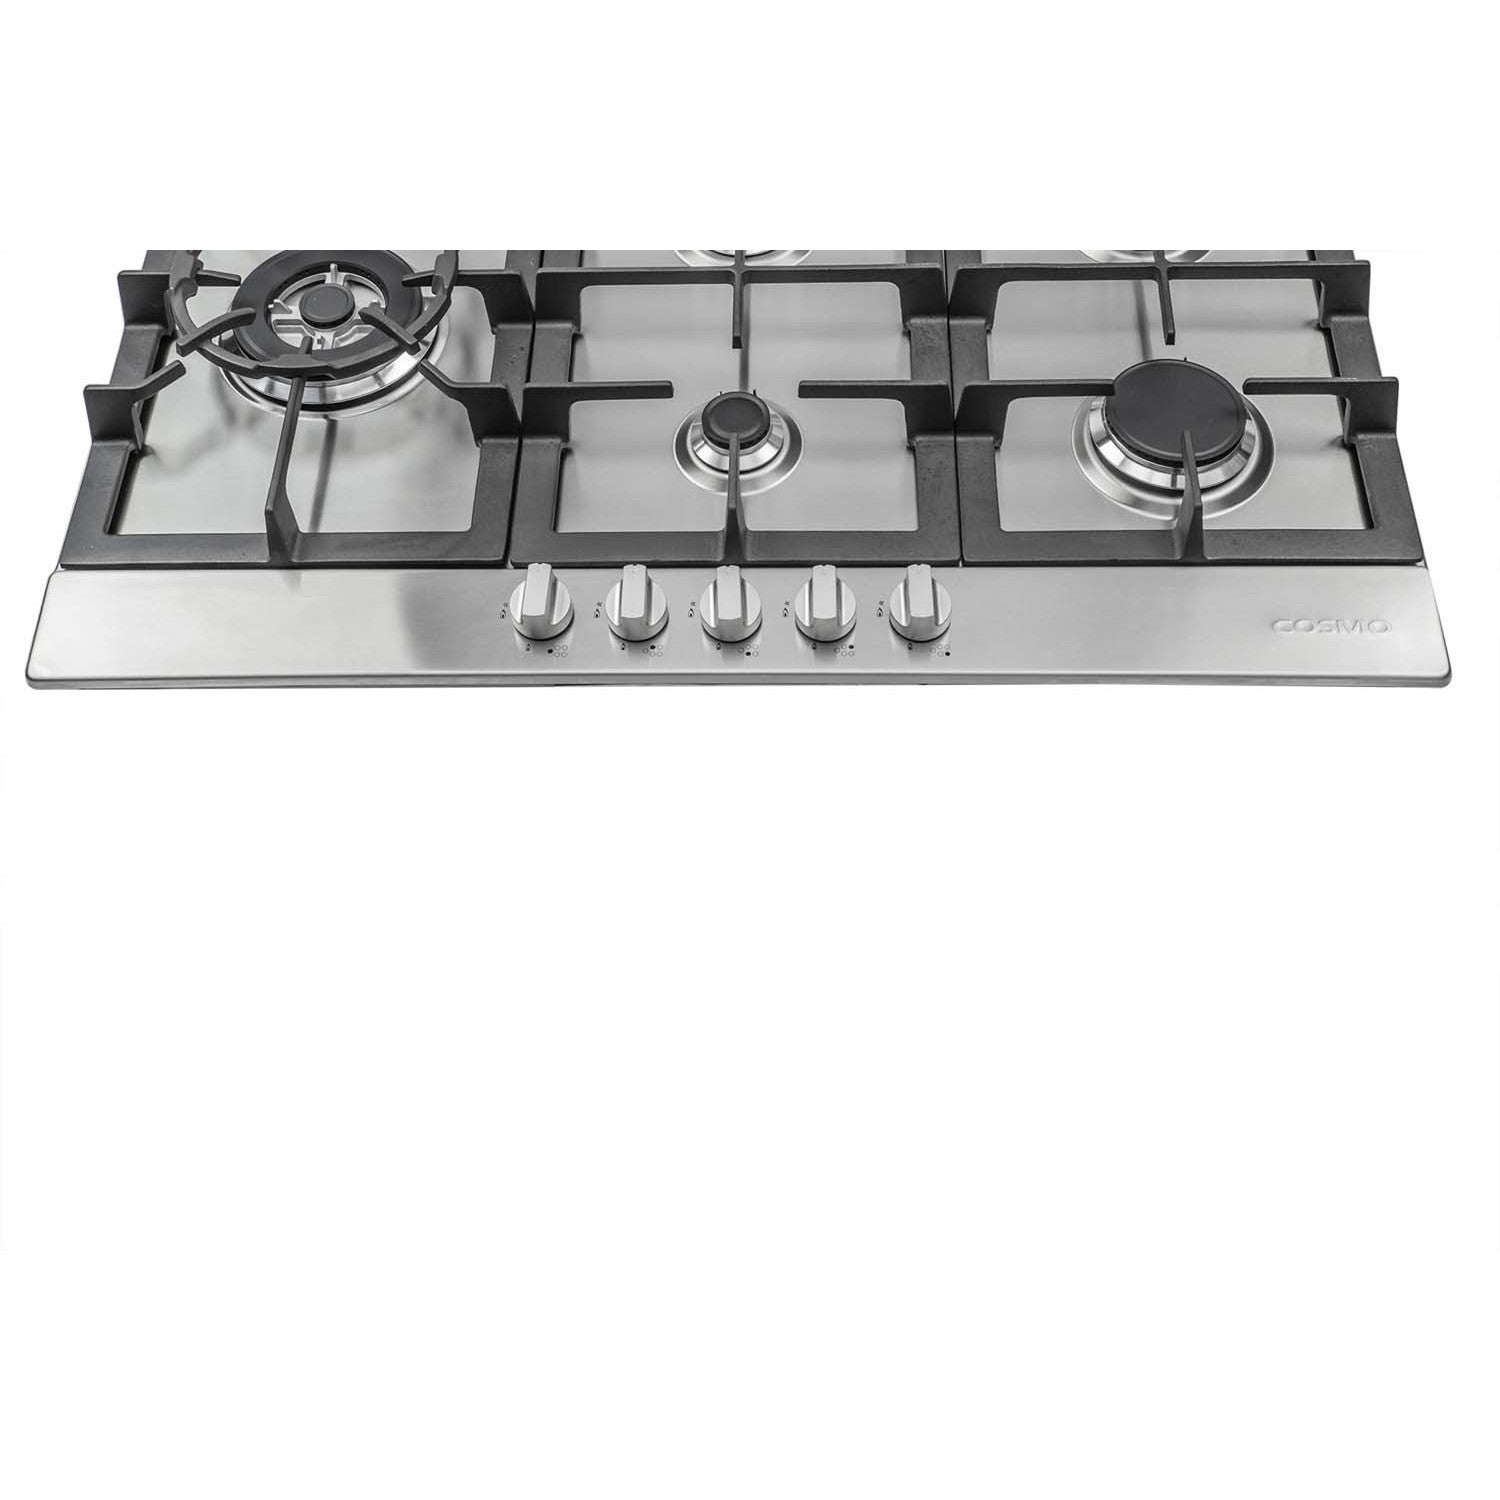 34 Inch Stainless Steel Gas Cooktop